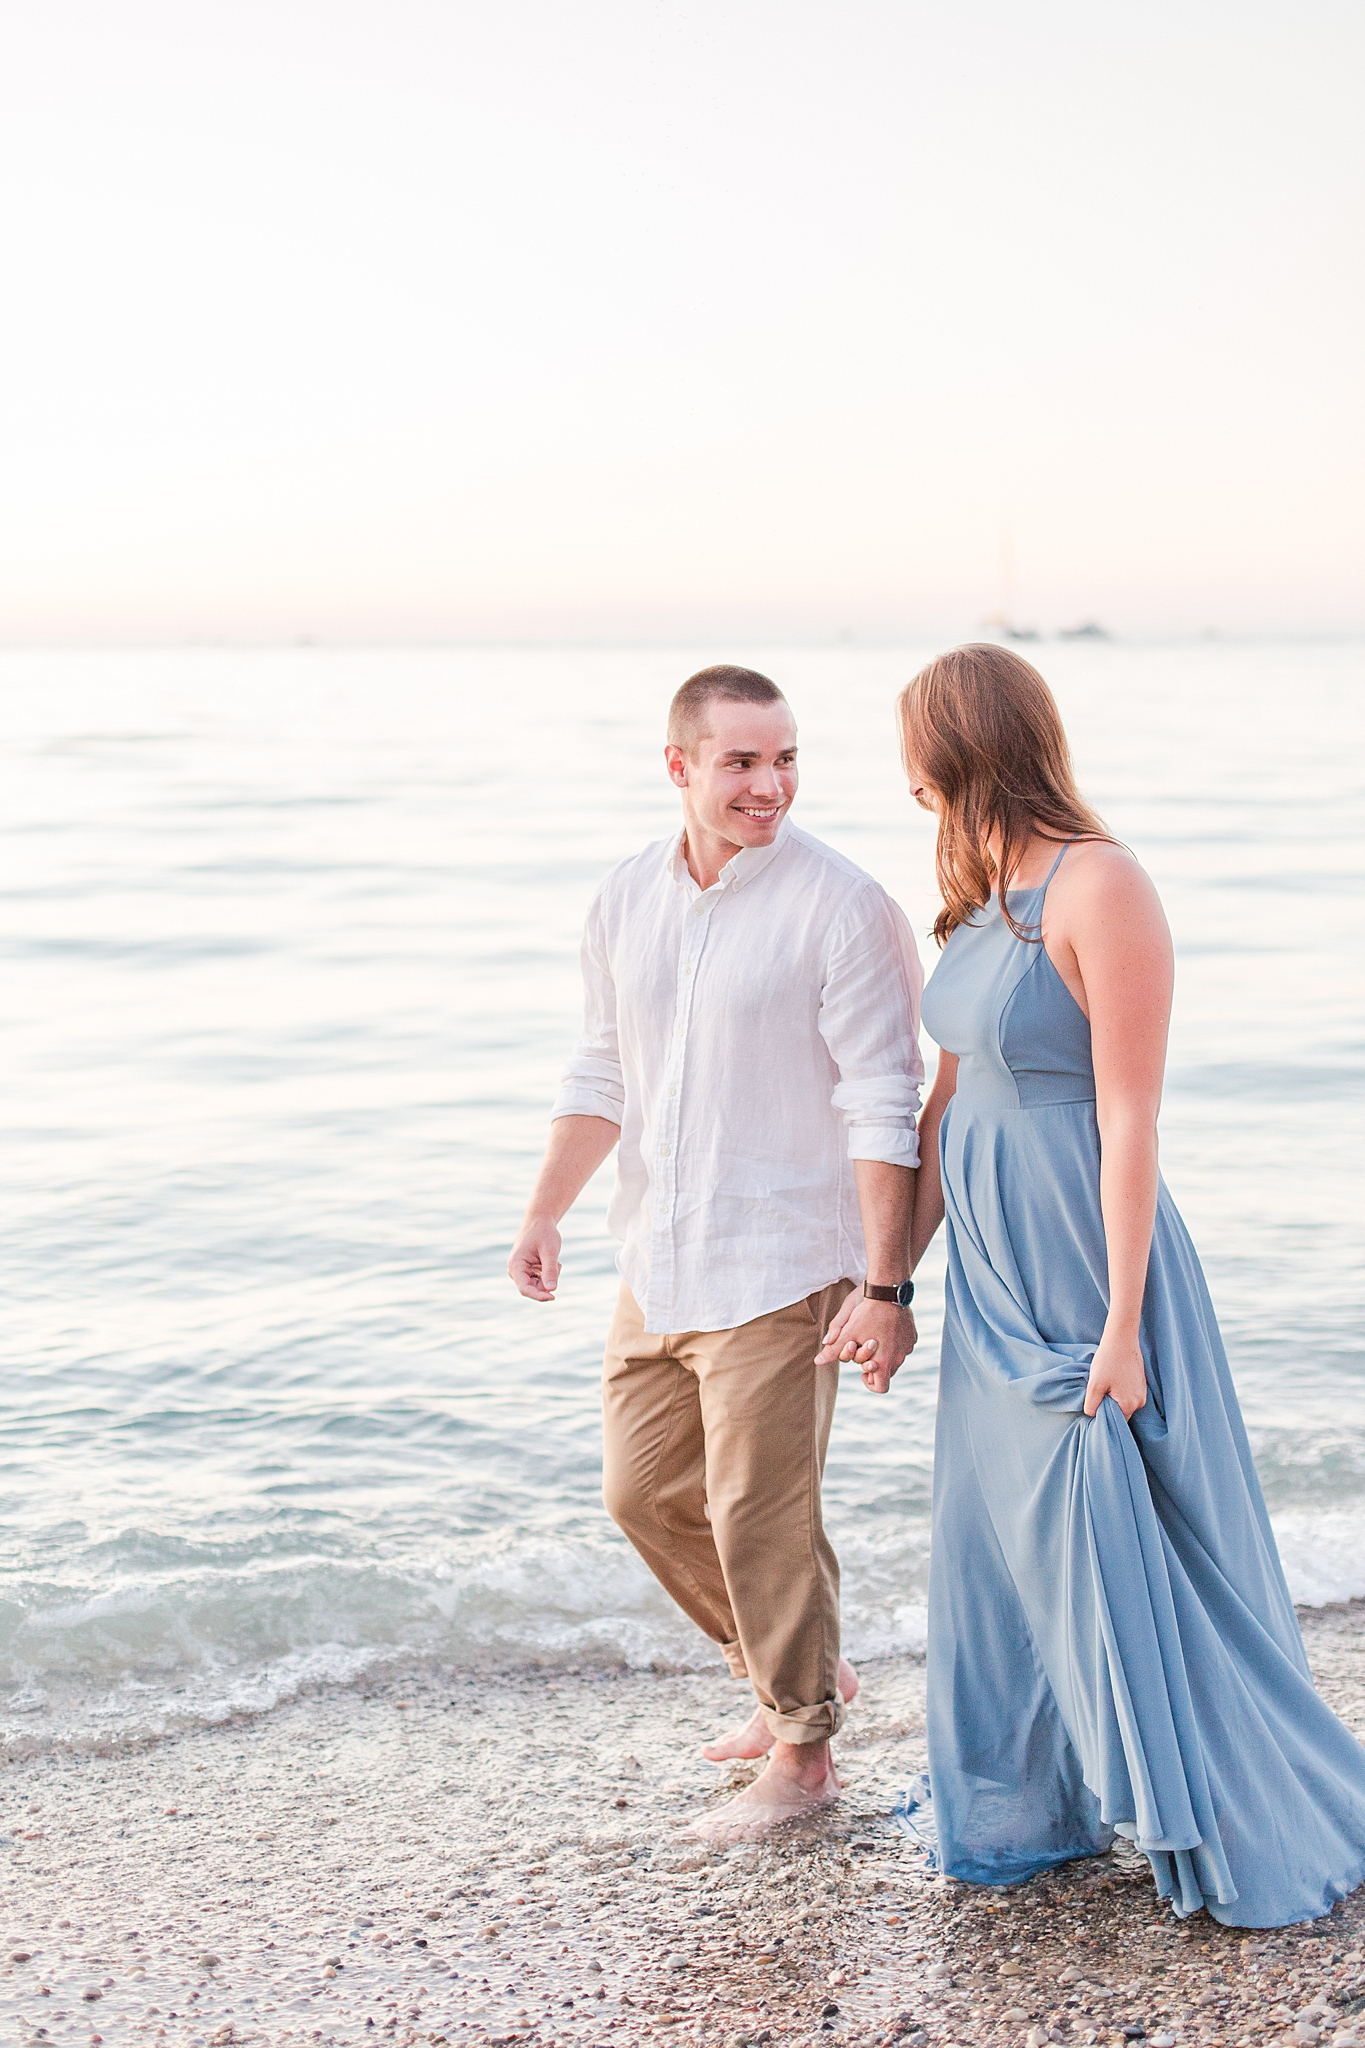 waterfront-lighthouse-engagement-photography-in-charlevoix-mi-by-courtney-carolyn-photography_0020.jpg